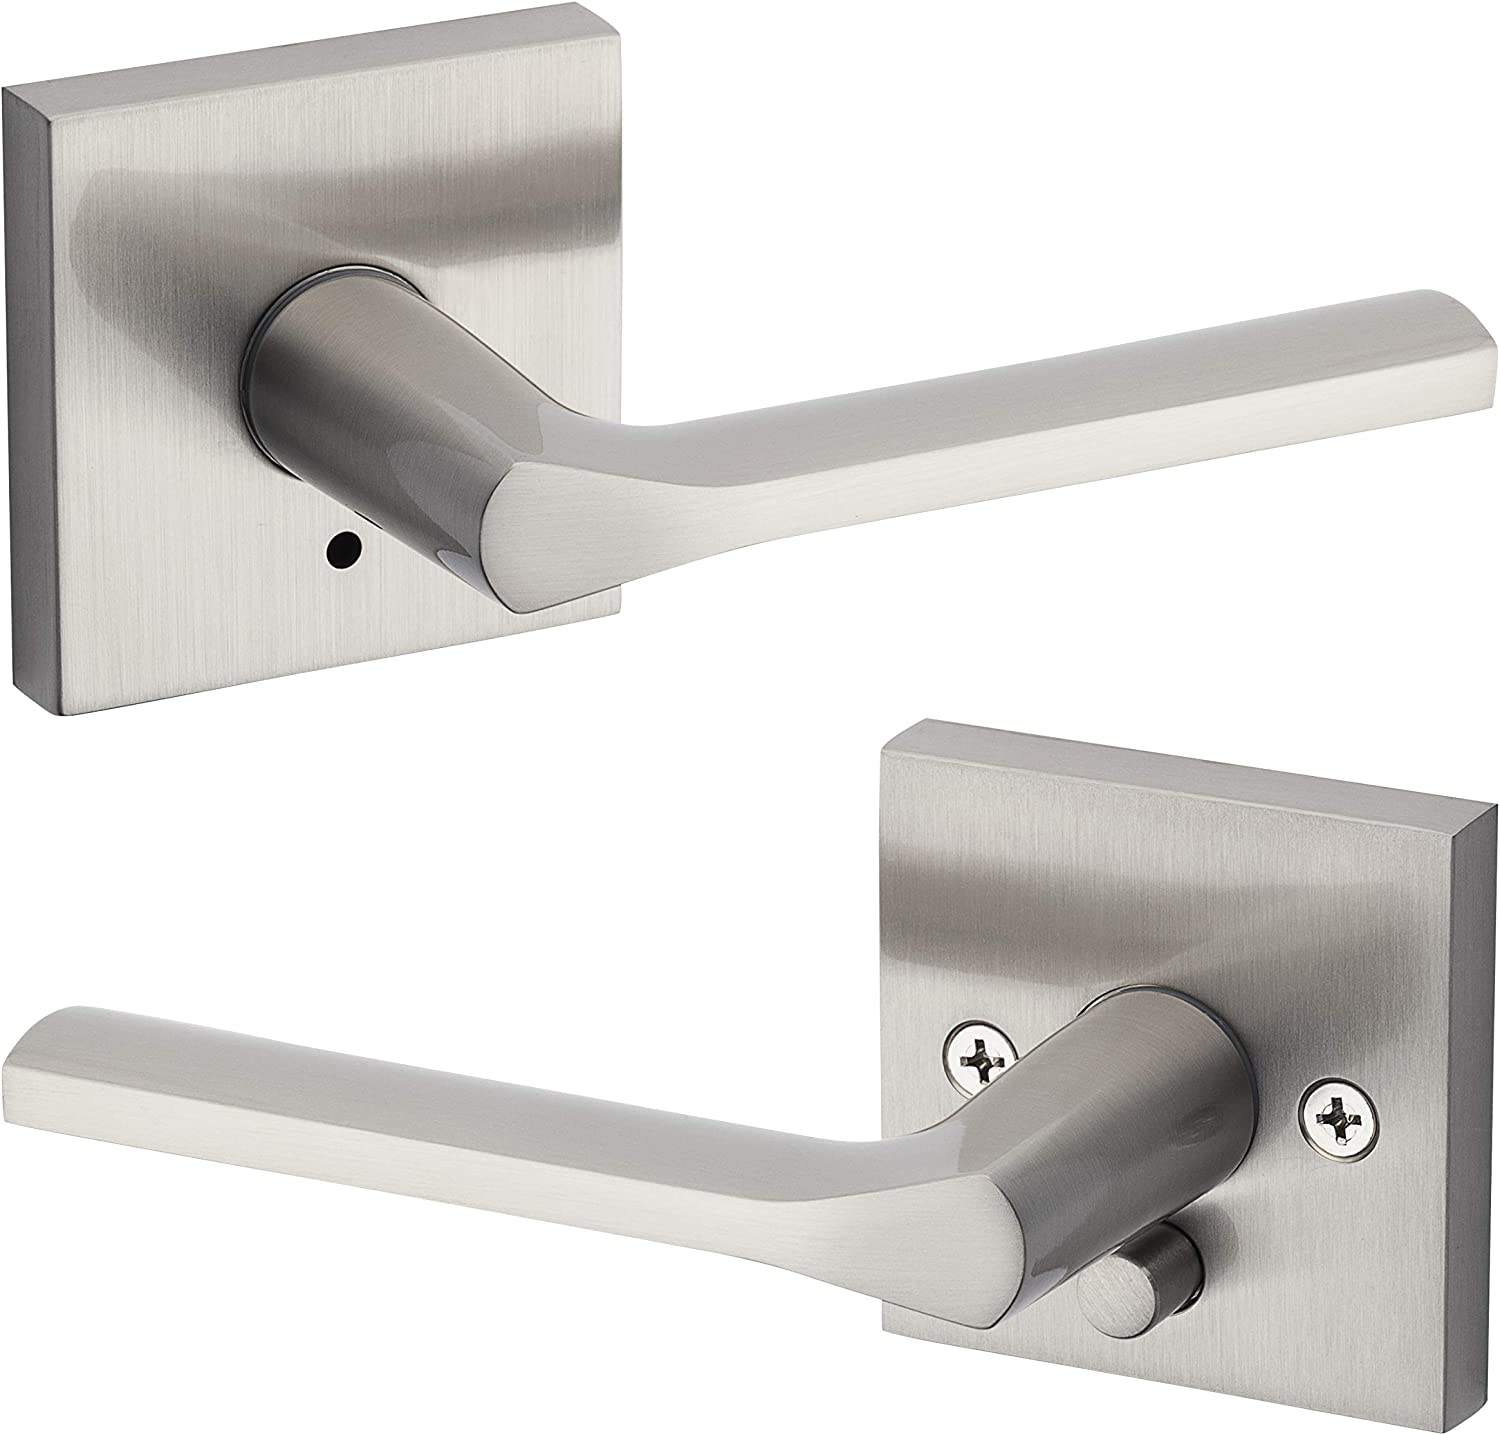 Pack of 2 Kwikset 91550-004 Milan Door Handle Lever with Modern Contemporary Slim Round Design for Home Bedroom or Bathroom Privacy in Polished Chrome